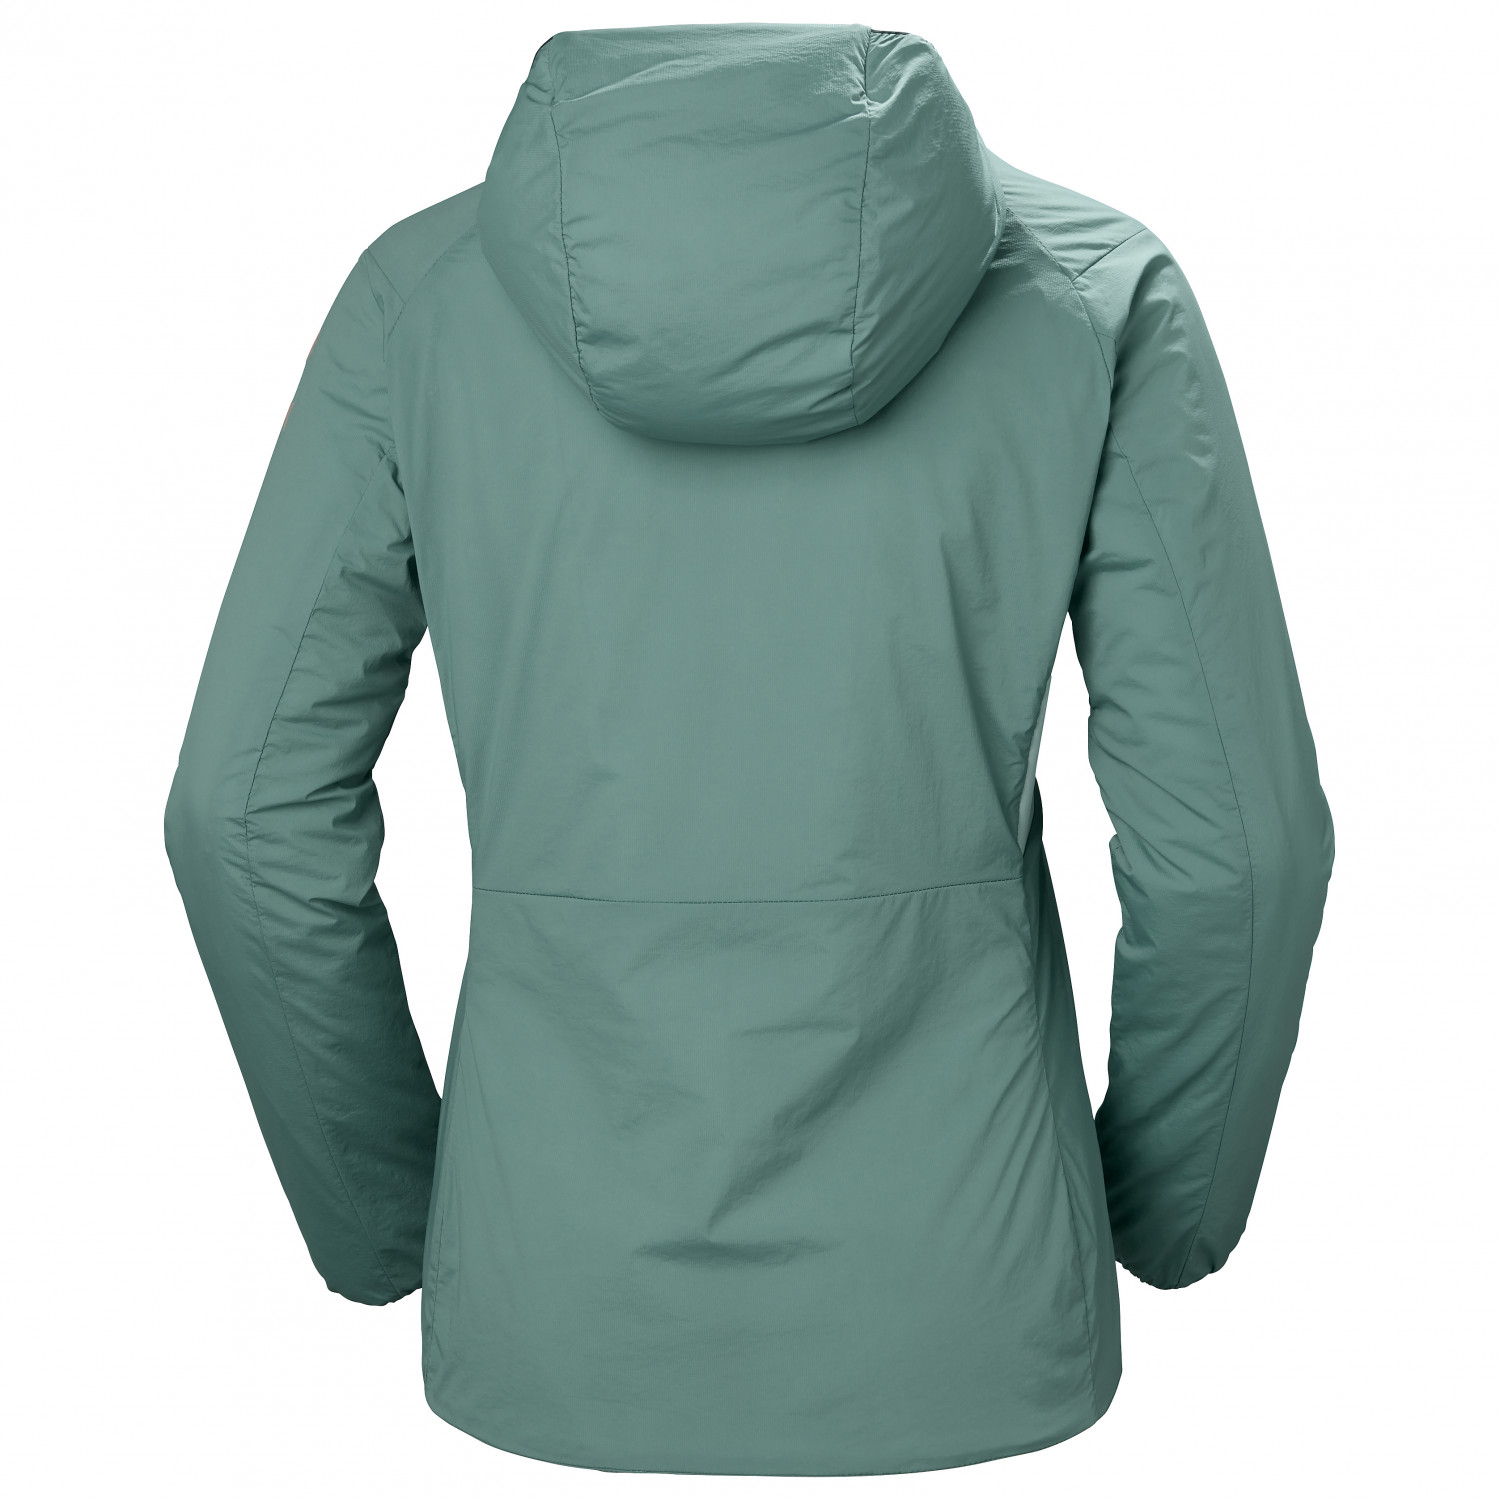 af5da1b9 ... Helly Hansen - Women's Odin Stretch Insulated Jacke - Syntetisk jakke  ...